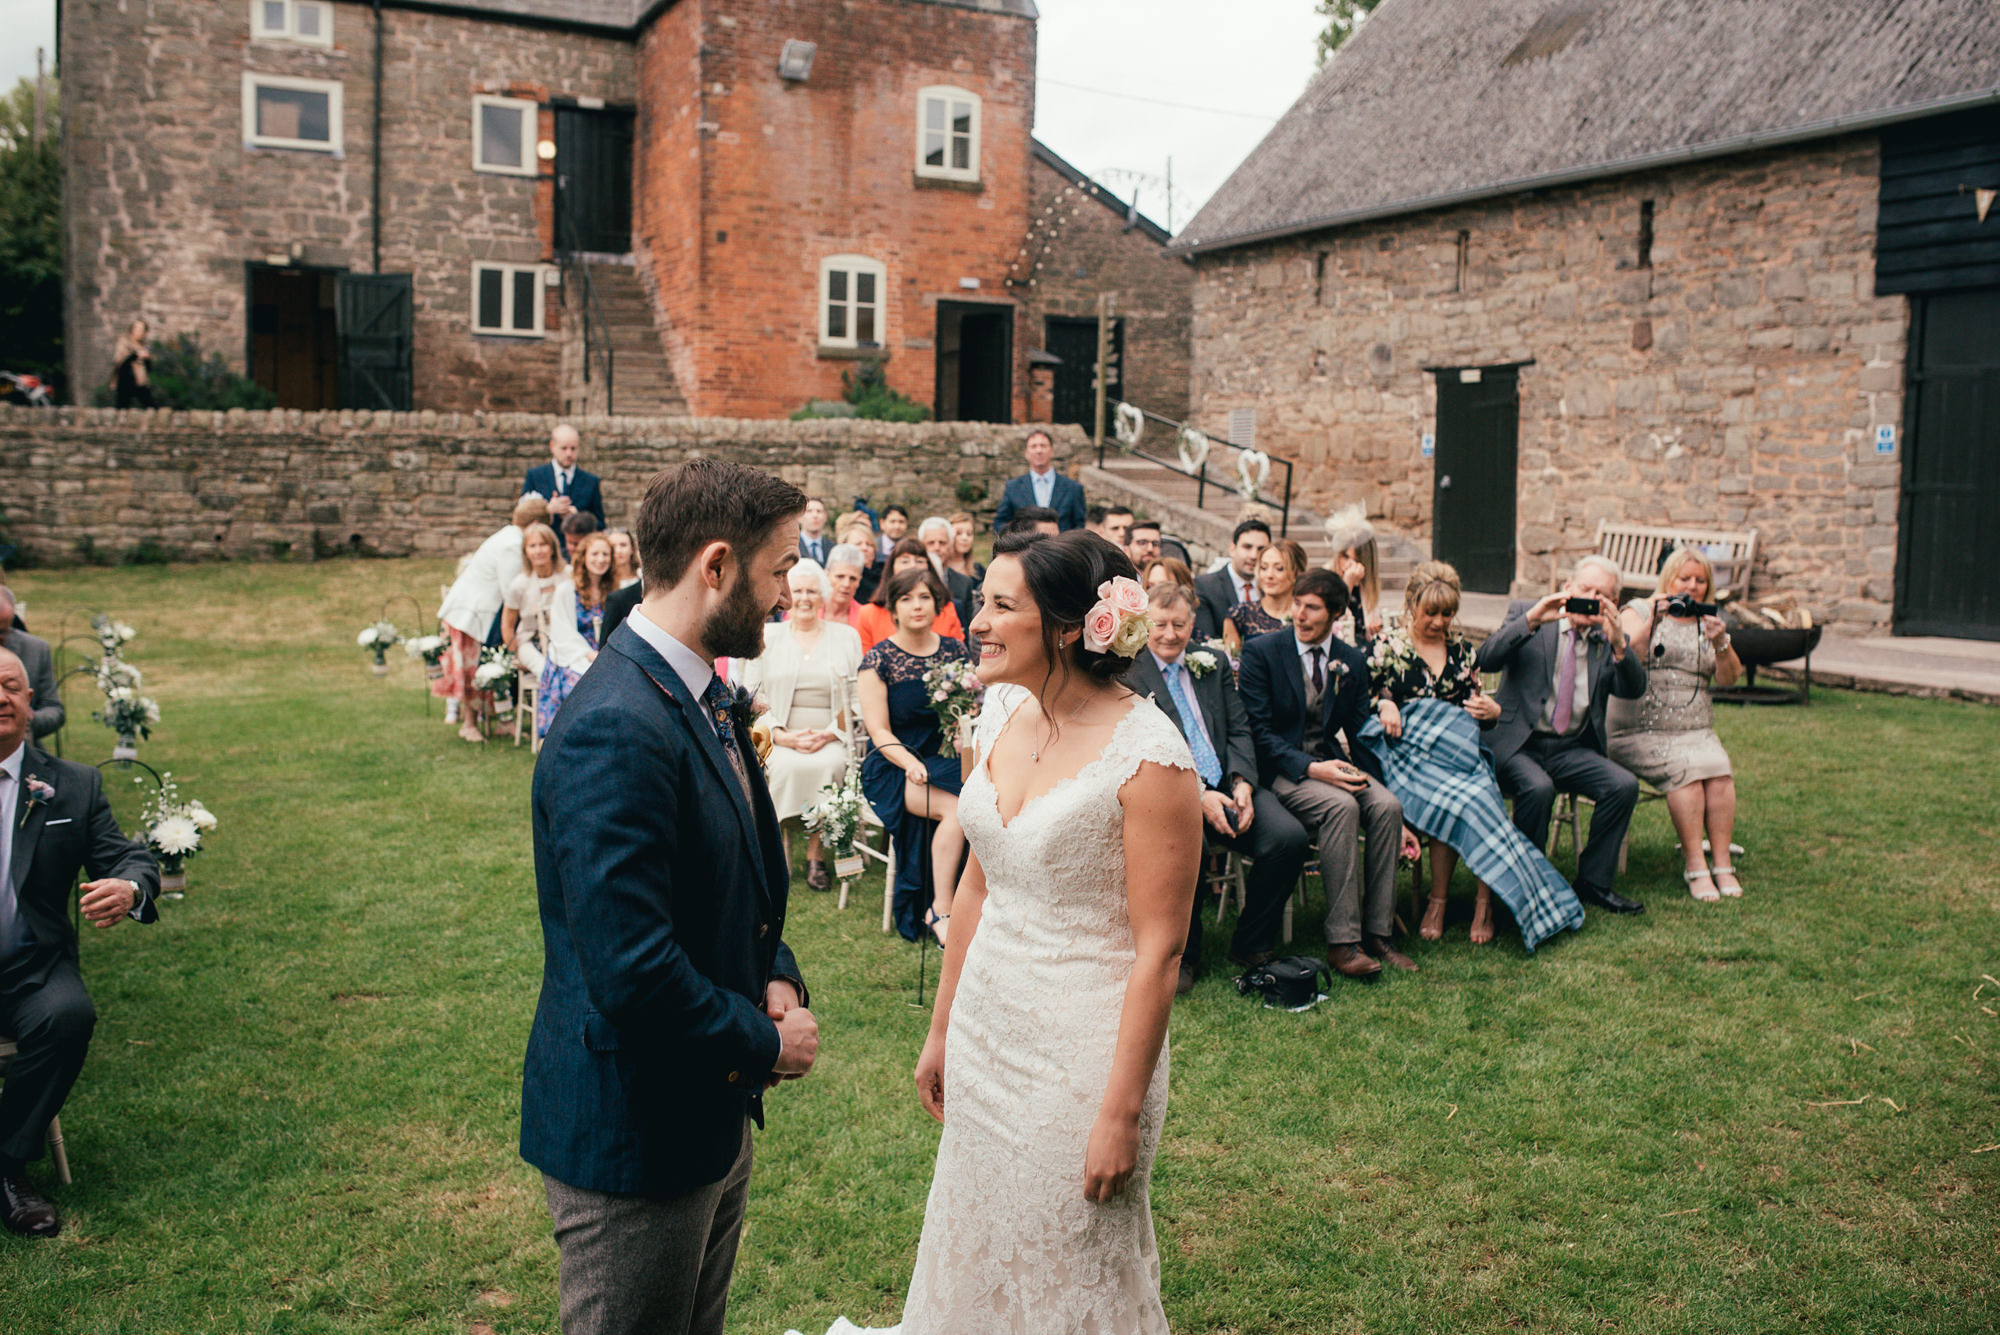 Lyde Court wedding Photographer34